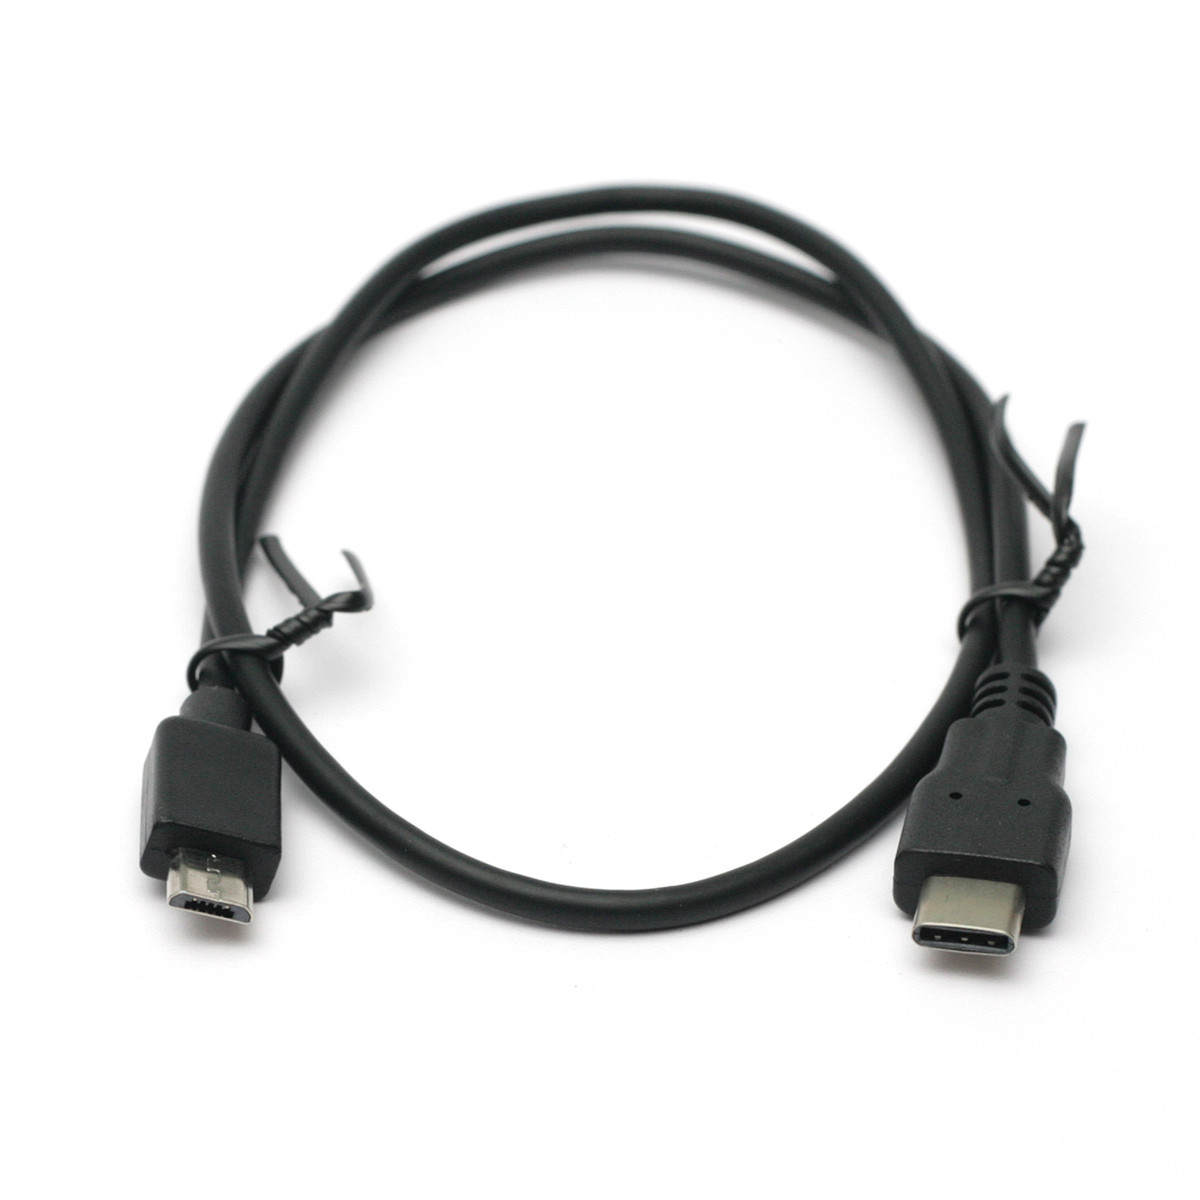 Kабель PowerPlant USB 3.0 Type C – micro USB 0.5м